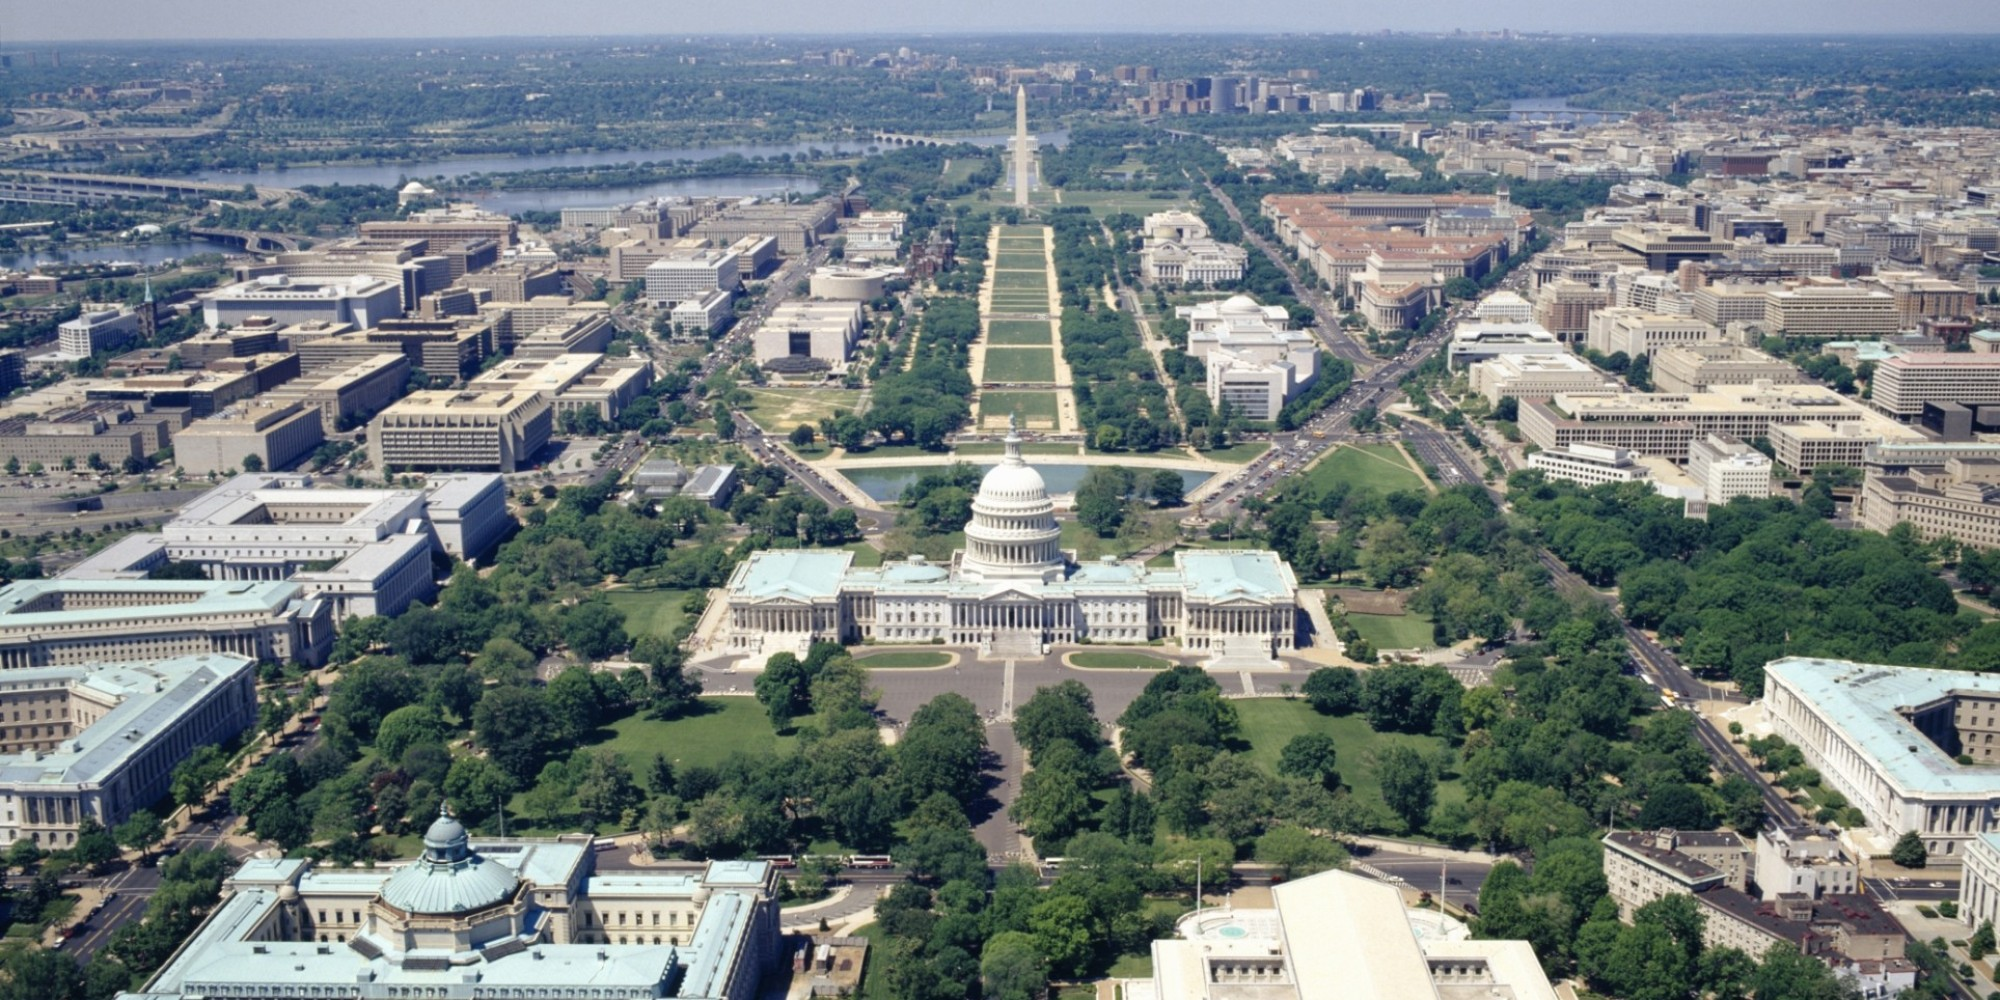 Aerial view of Washington, D.C. from the Library of Congress and U.S. Capitol Building in the foreground to the Washington Monument on the National Mall.